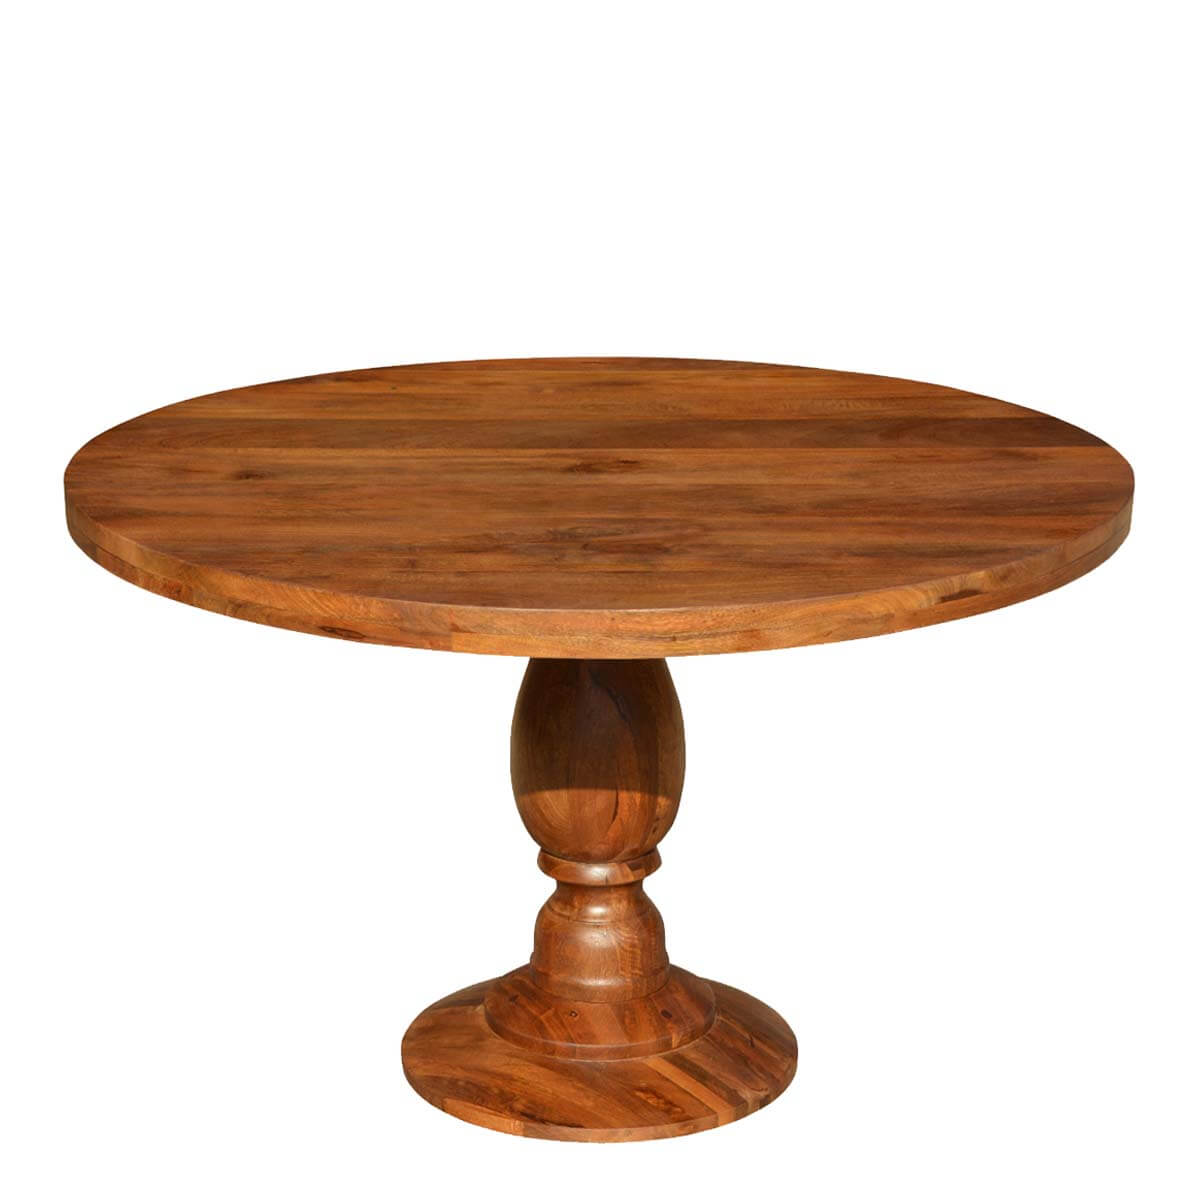 Rustic colonial american solid wood 48 round pedestal for Round pedestal dining table